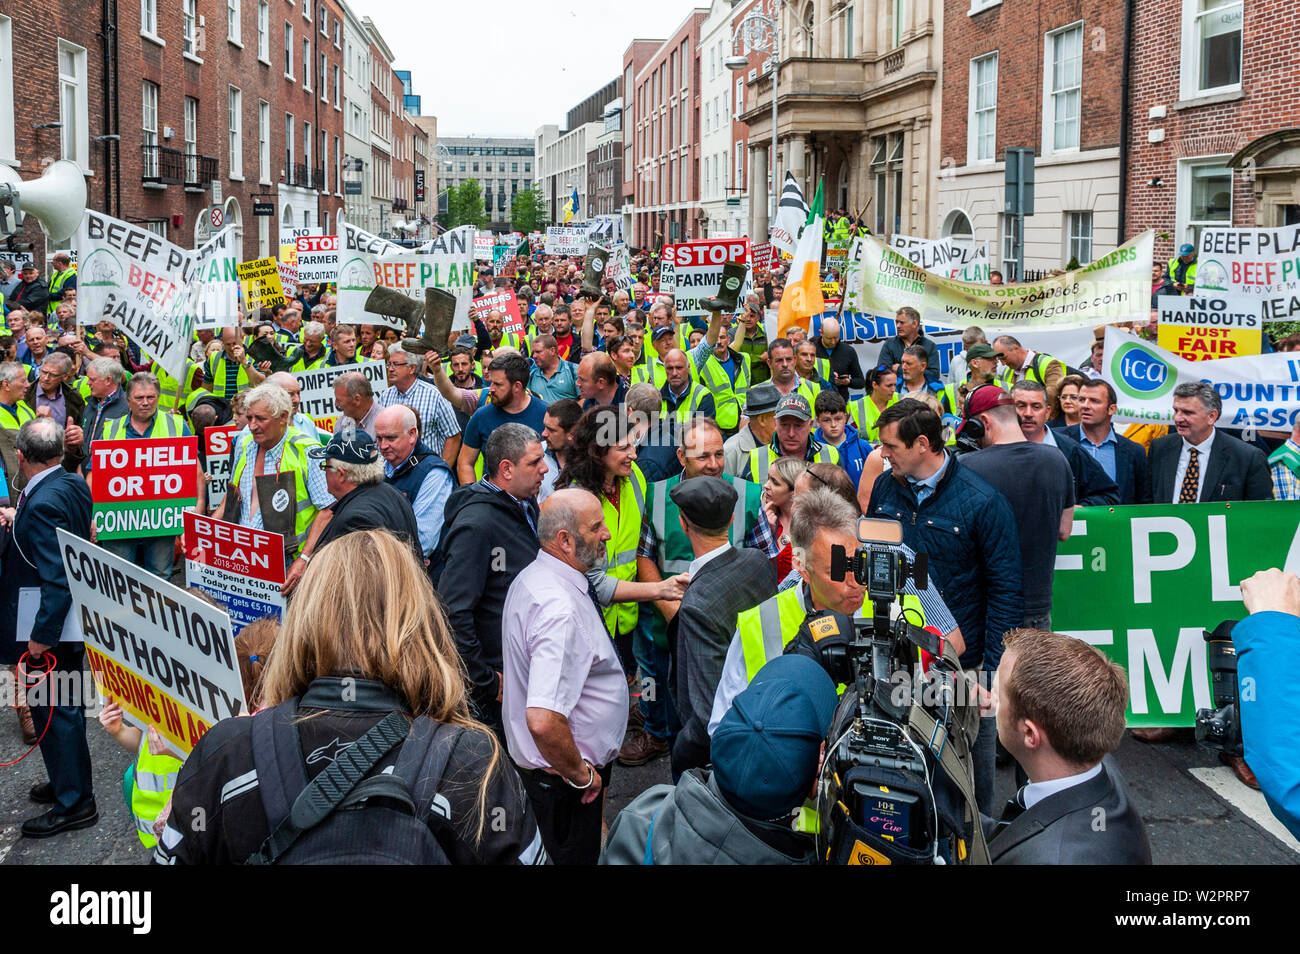 dublin-ireland-10th-july-2019-thousands-of-farmers-descended-on-leinster-house-today-in-protest-at-the-mercosur-deal-which-farmers-claim-will-be-the-final-nail-in-the-coffin-for-their-way-of-life-credit-andy-gibsonalamy-live-news-W2PRP7.jpg